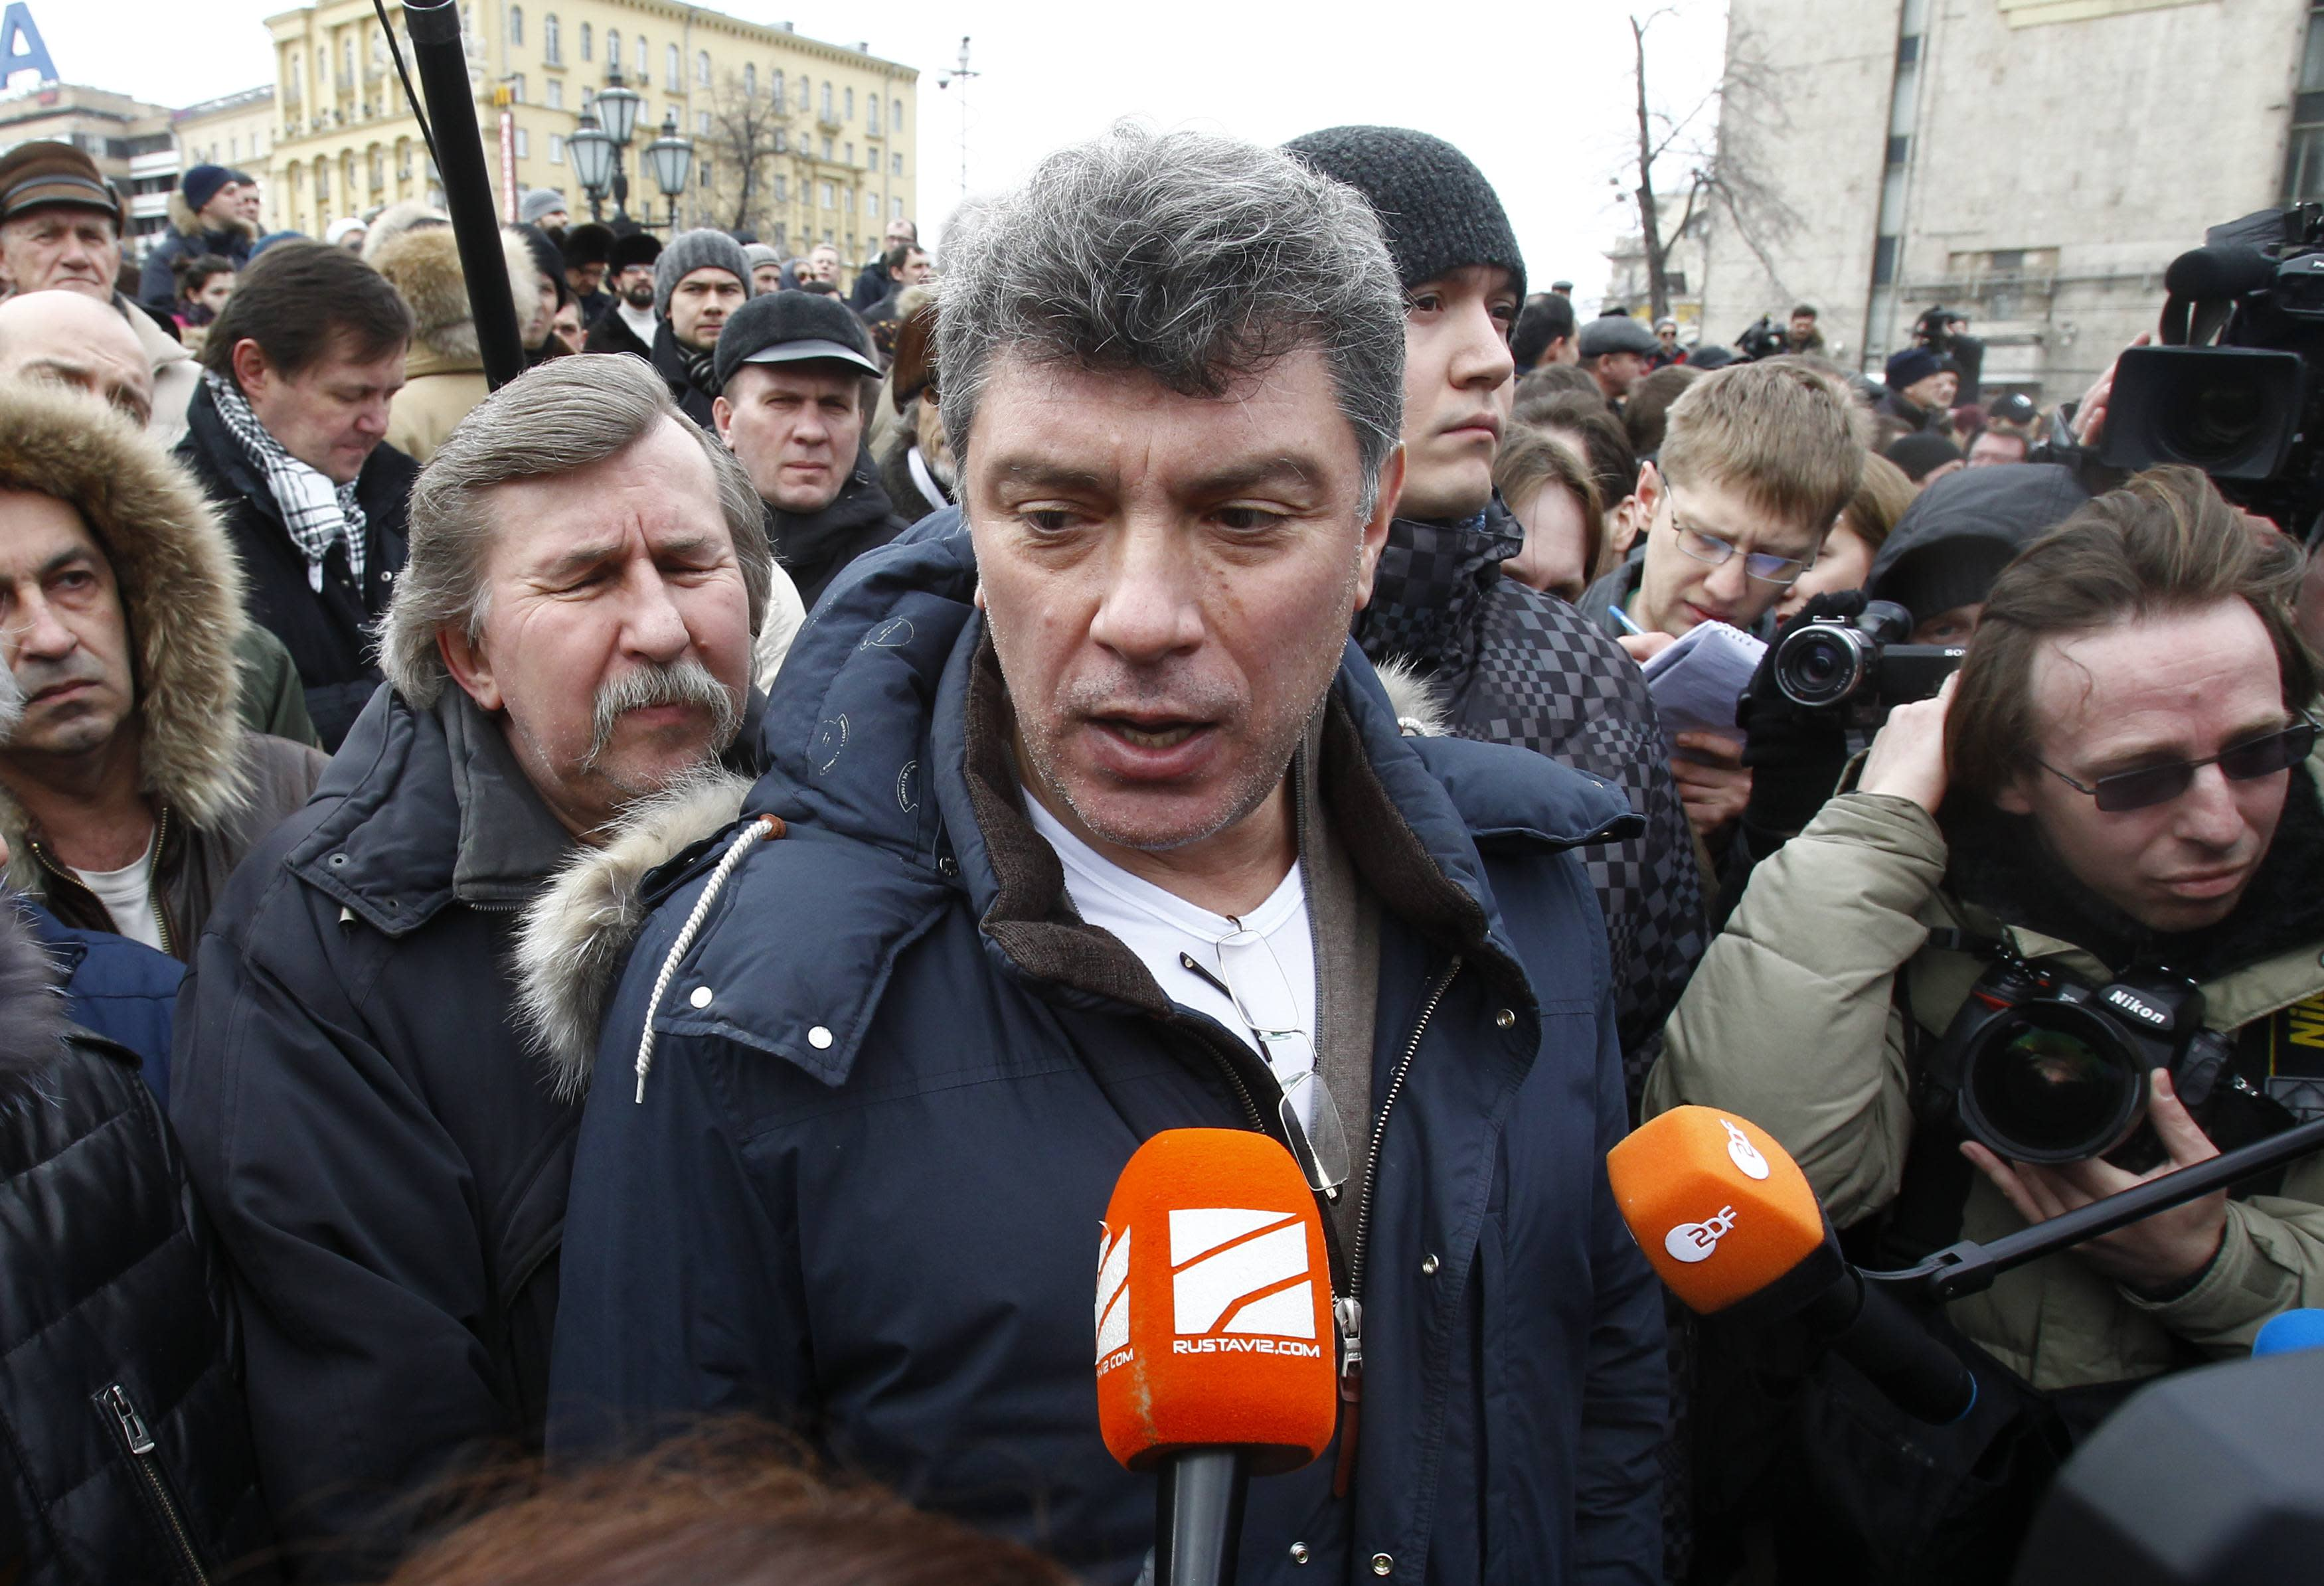 Opposition leader Boris Nemtsov speaks to the media during a gathering of opposition supporters in central Moscow March 17, 2012. The Russian opposition politician and former deputy prime minister Boris Nemtsov has been shot and killed by four shots in central Moscow, the Russian government said in a statement, according to the Interfax news agency. Picture taken March 17, 2012. REUTERS/Mikhail Voskresensky/Files (RUSSIA - Tags: POLITICS CIVIL UNREST)